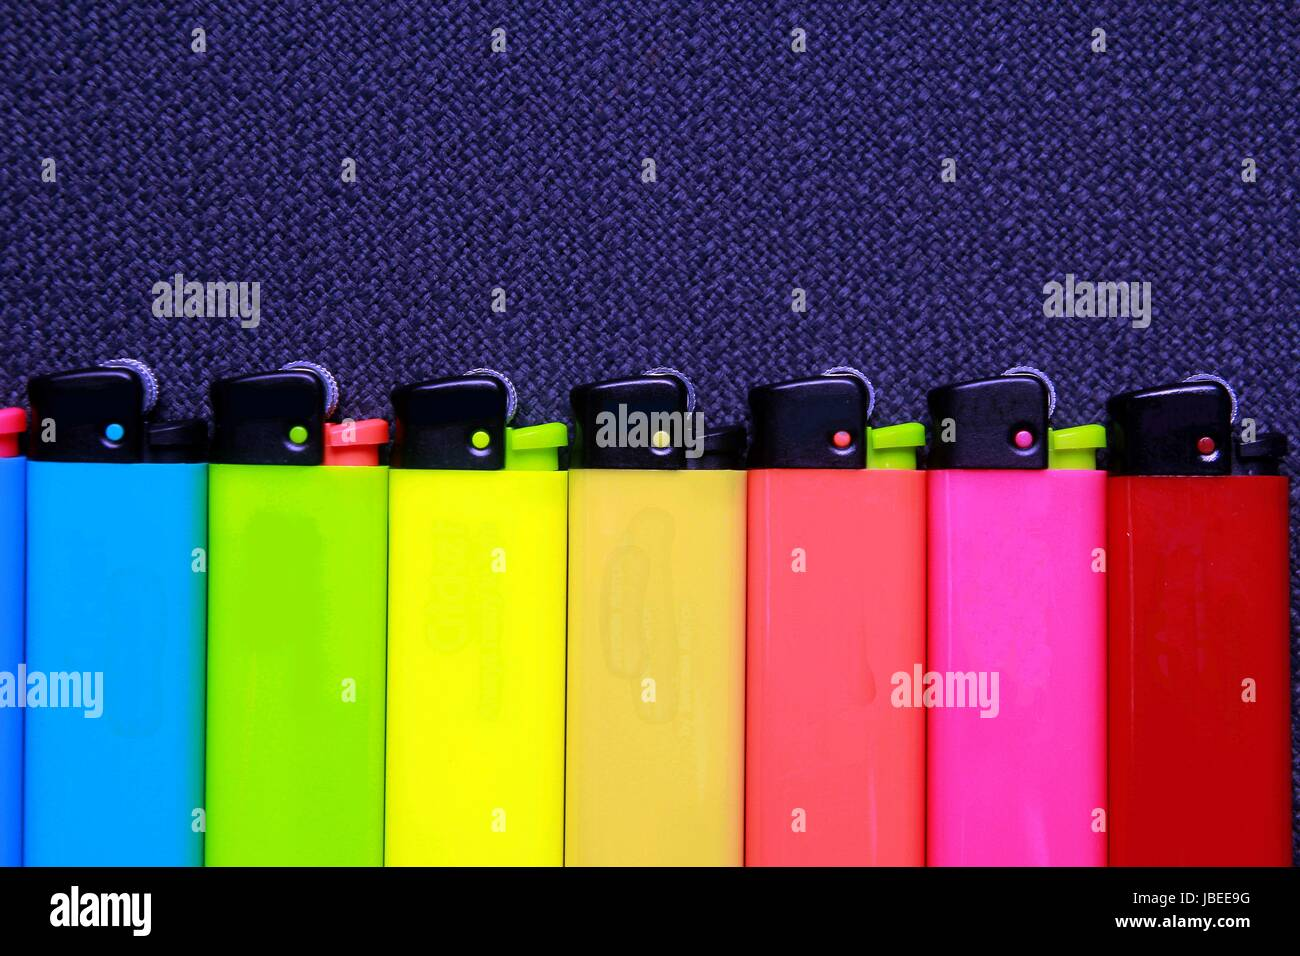 Photo of colorful cigarette lighters - Stock Image